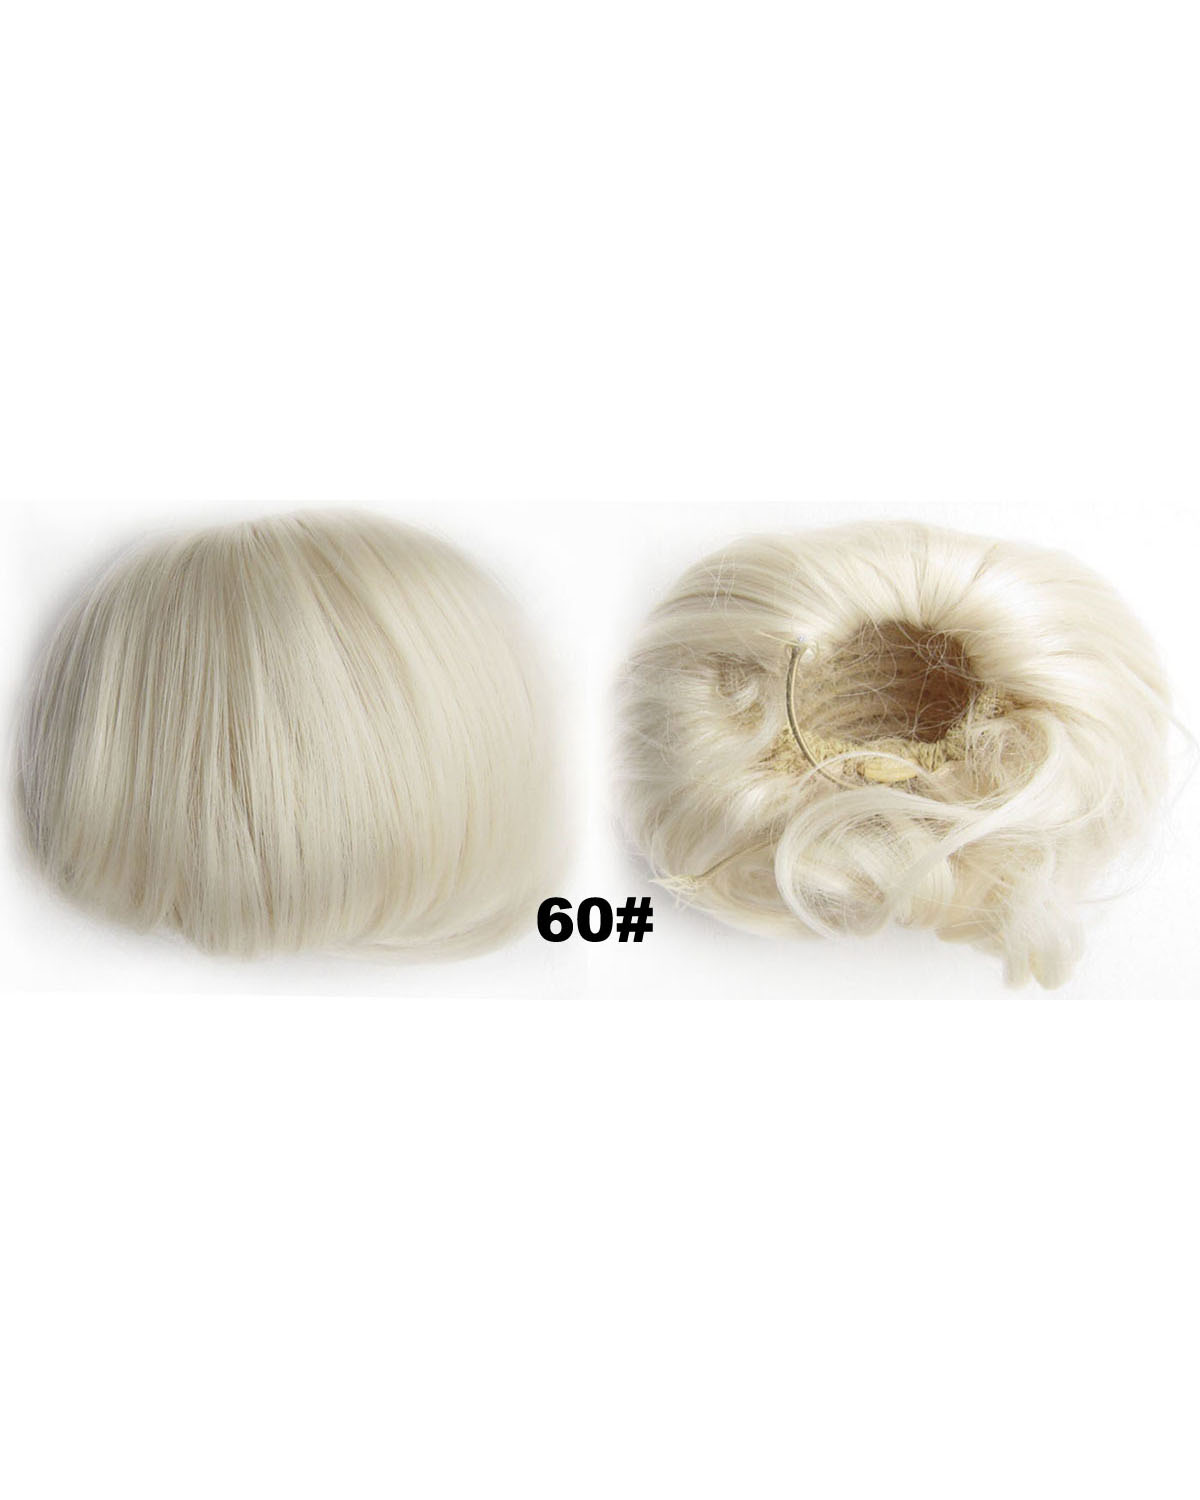 Ladies Smooth Straight Short Hair Buns Drawstring Synthetic Hair Extension Bride Scrunchies  60#